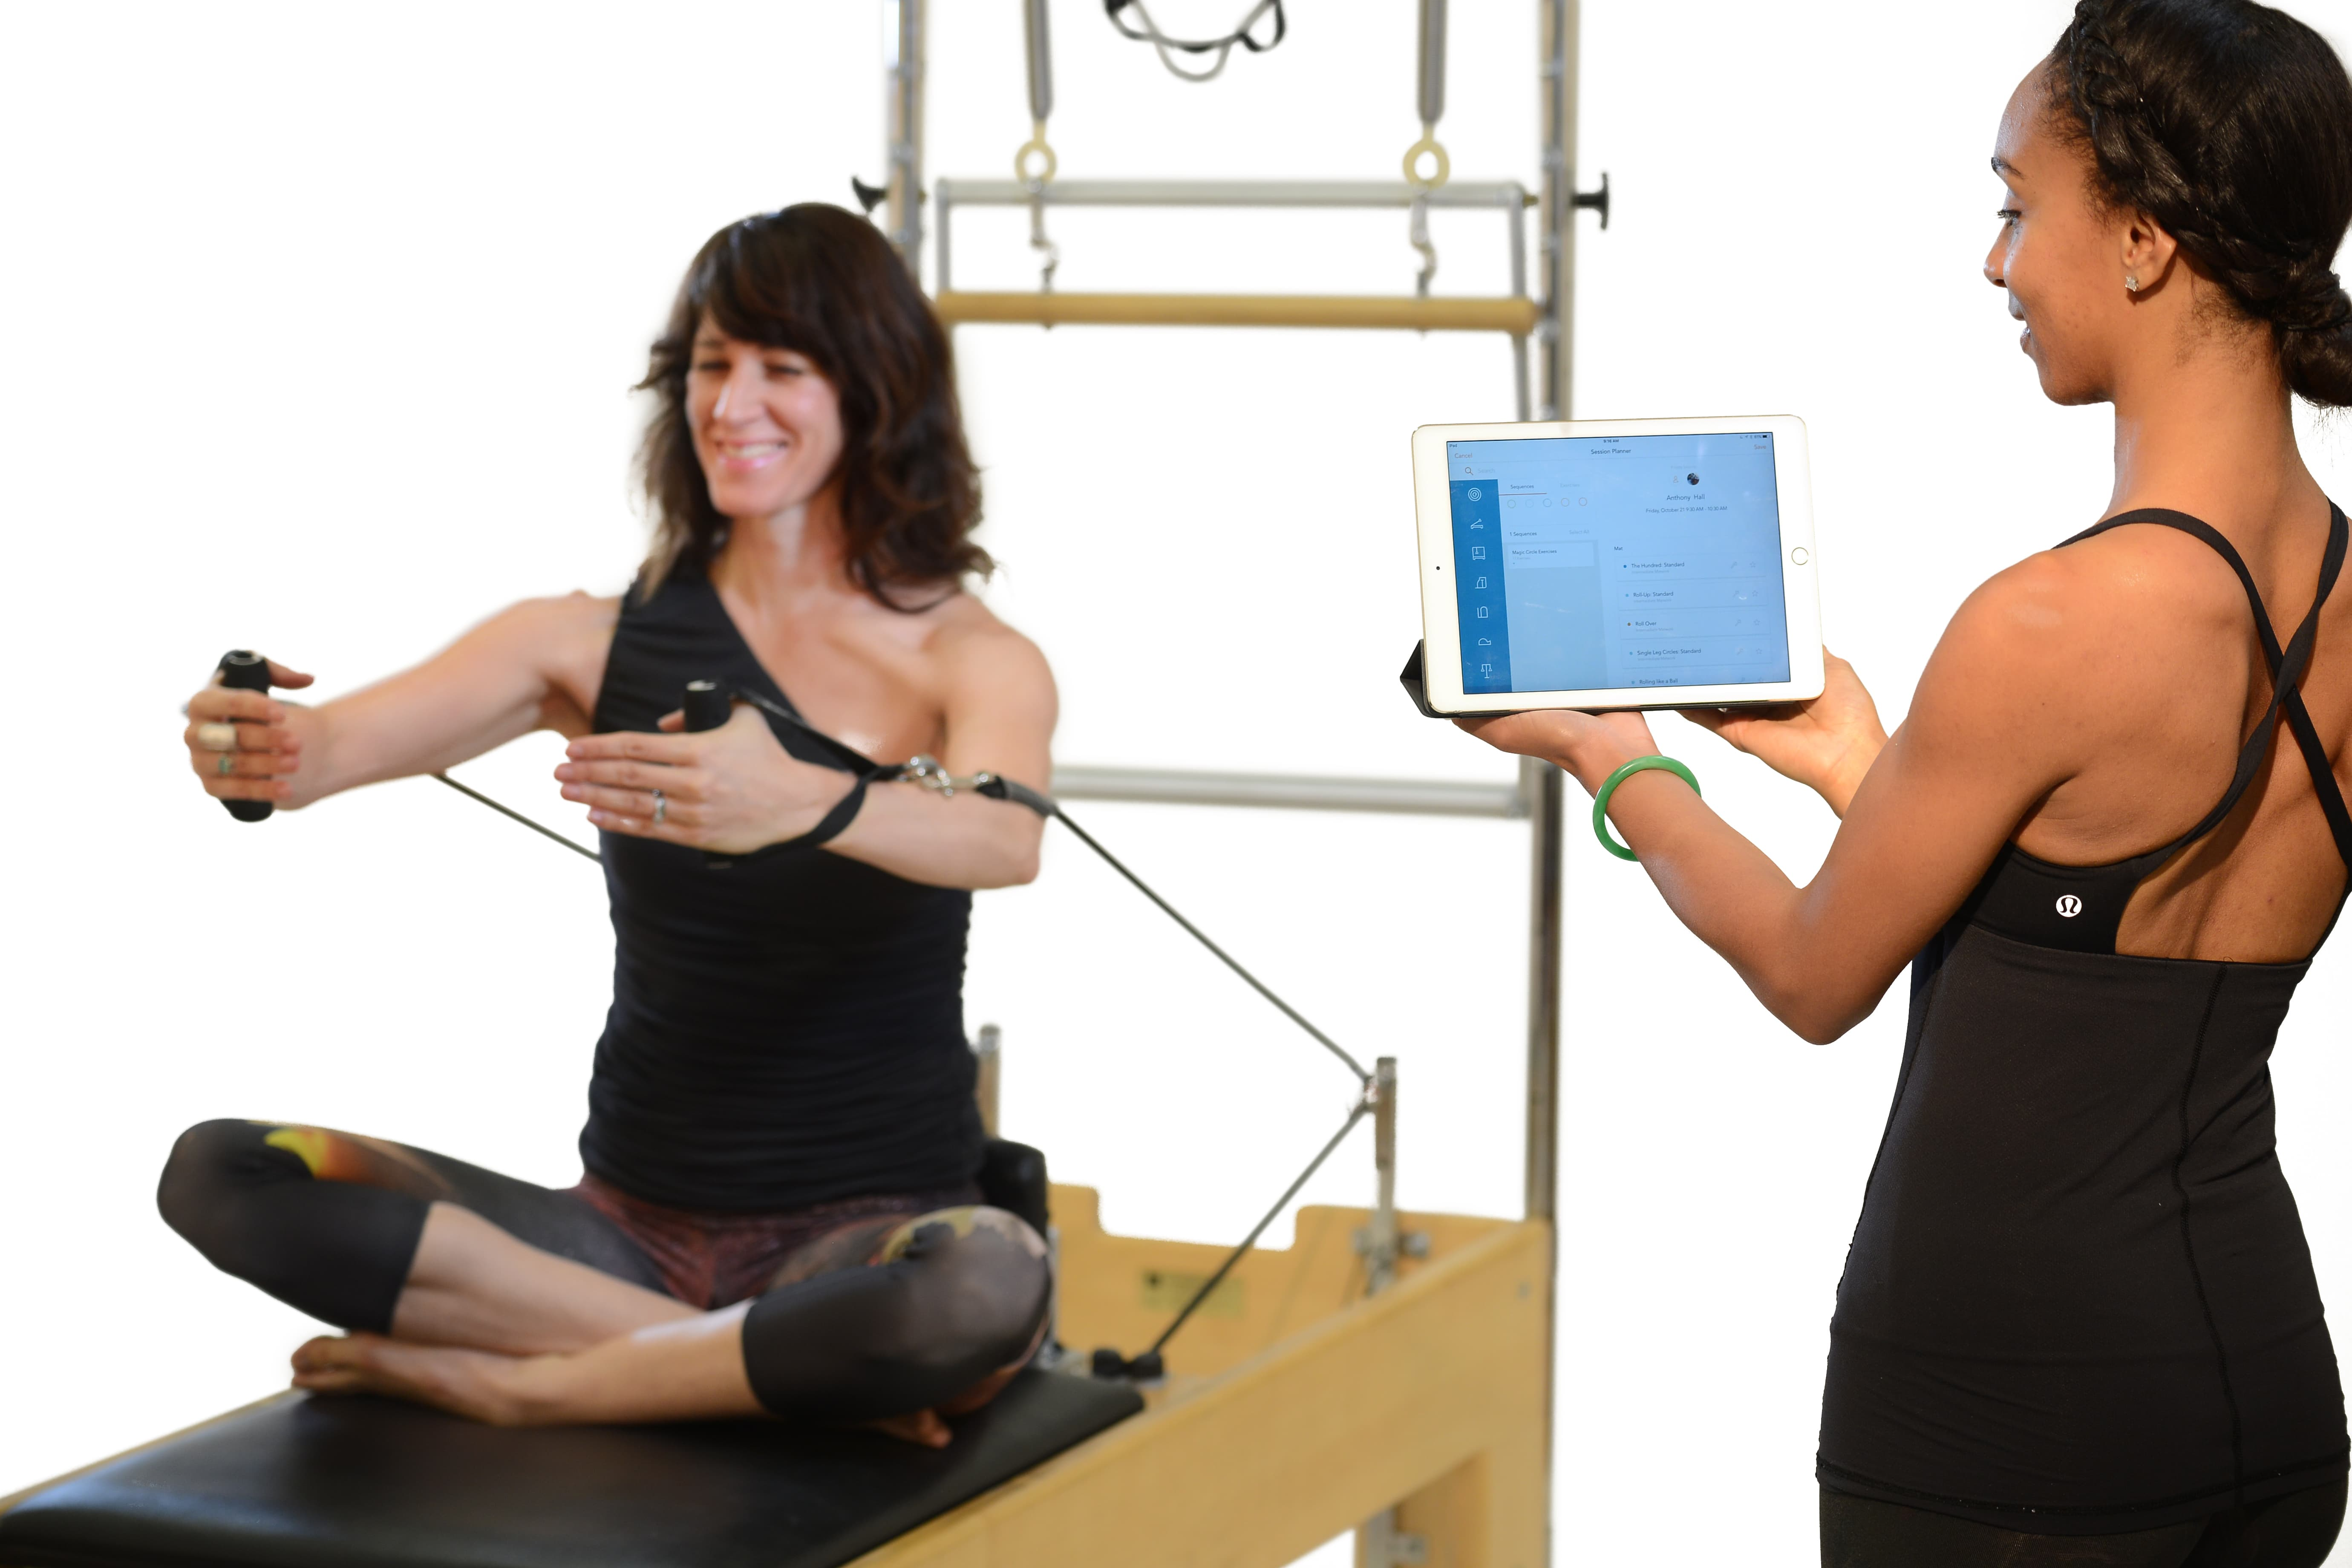 big data in healthcare pilates app